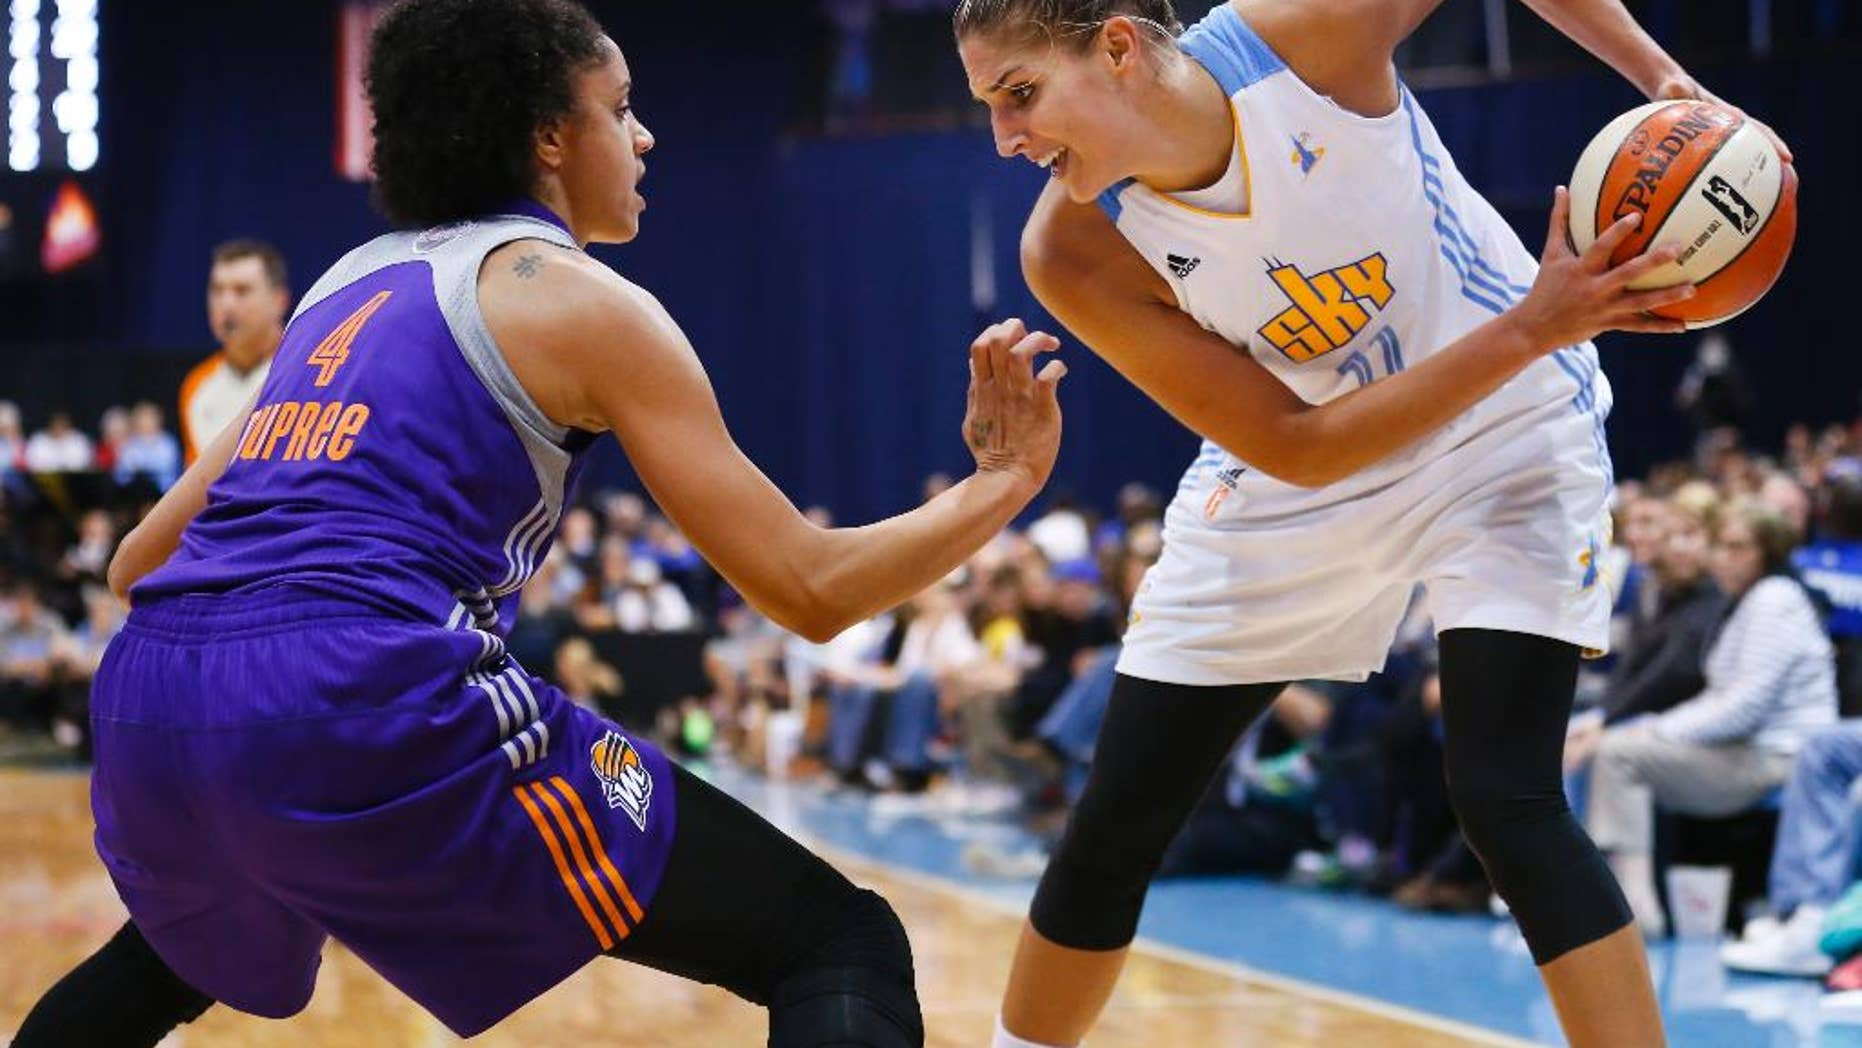 FILE- In this Sept. 12, 2014, file photo, Chicago Sky forward Elena Delle Donne (11) works the ball against Phoenix Mercury forward Candice Dupree (4) during the second half of Game 3 of the WNBA Finals basketball series in Chicago. Delle Donne became the latest post player to withdraw from the U.S. women's basketball team because of injury. (AP Photo/Kamil Krzaczynski, File)